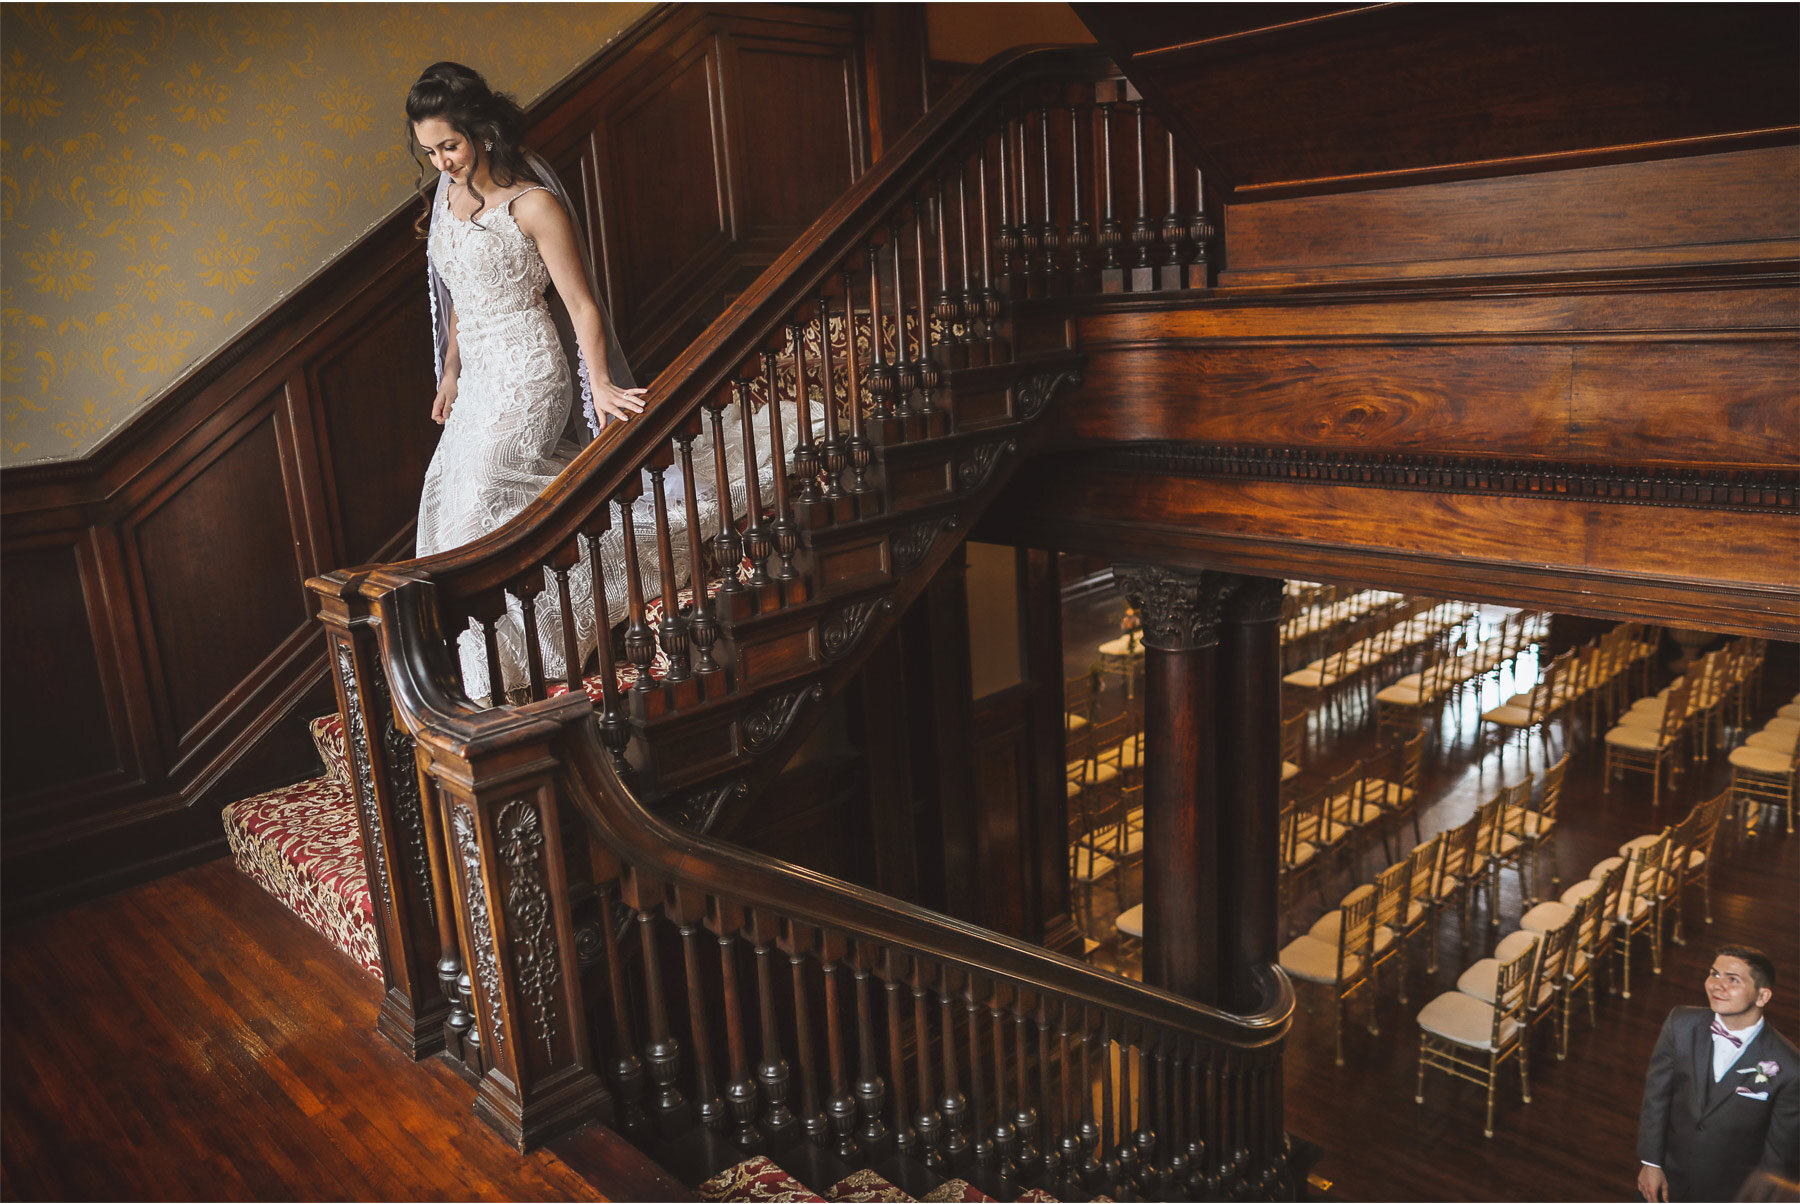 03-Wedding-by-Vick-Photography-Minneapolis-Minnesota-Semple-Mansion-Historic-Venue-Bride-Groom-First-Look-Staircase-Kaitlyn-and-Nate.jpg